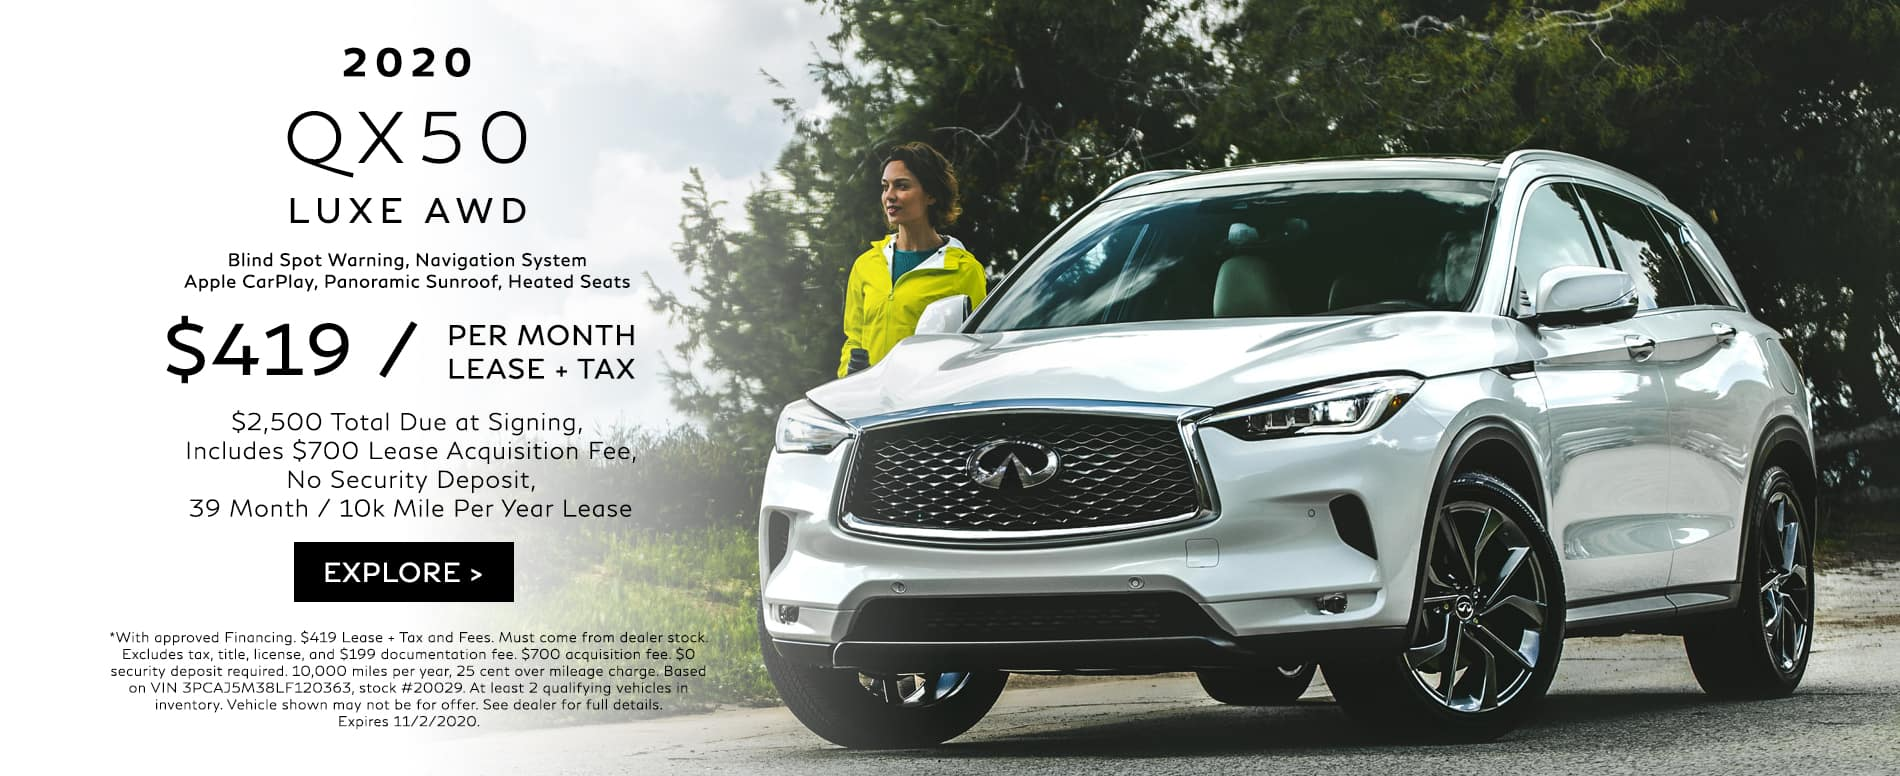 Lease a 2020 QX50 for $419/mo